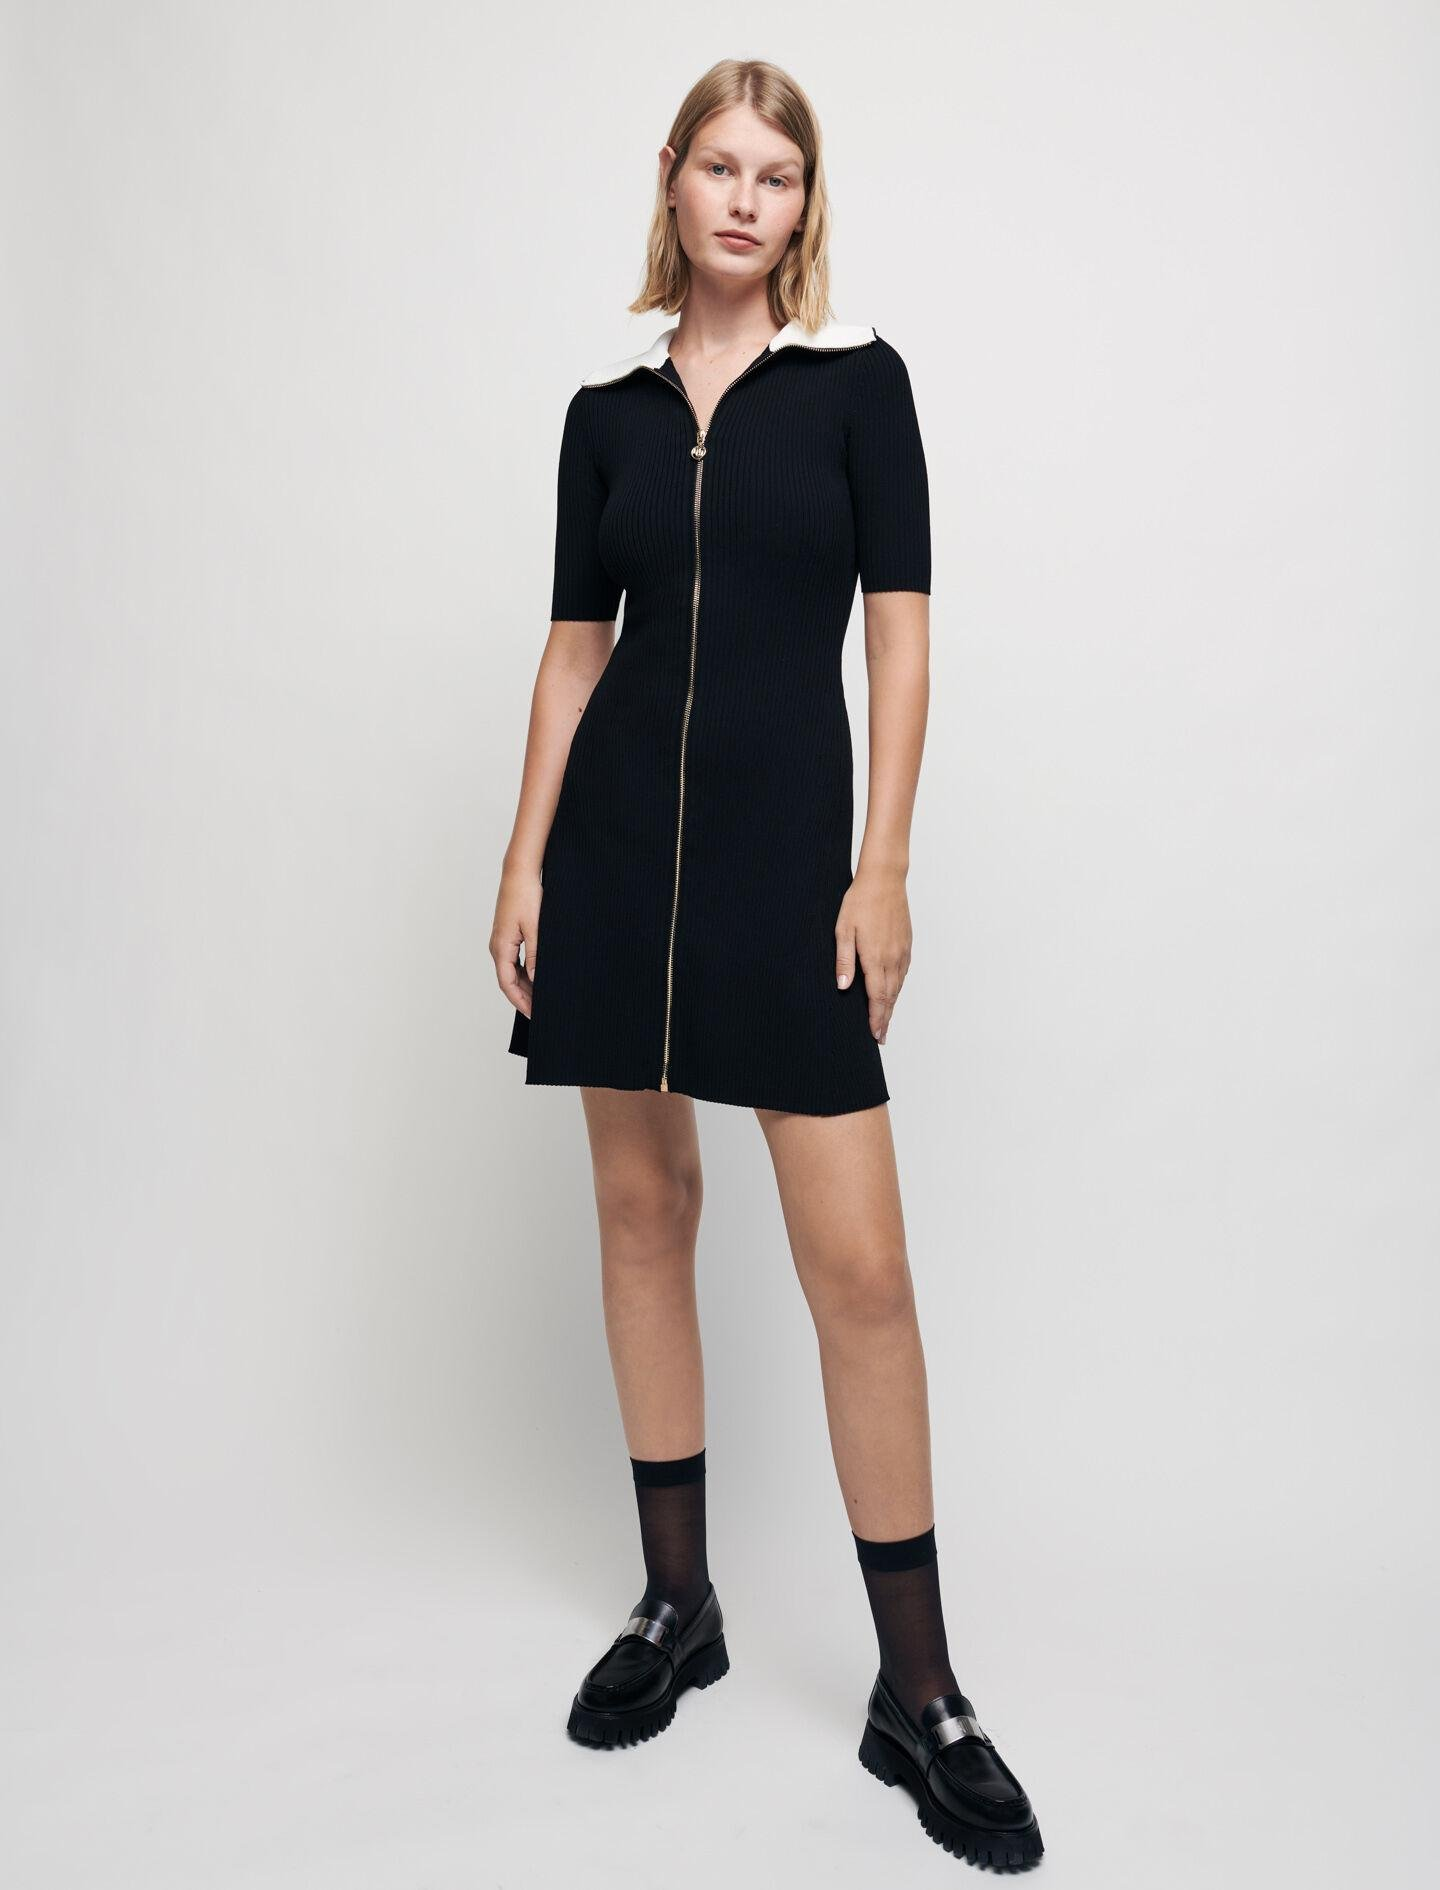 RIBBED KNIT DRESS WITH ZIP COLLAR